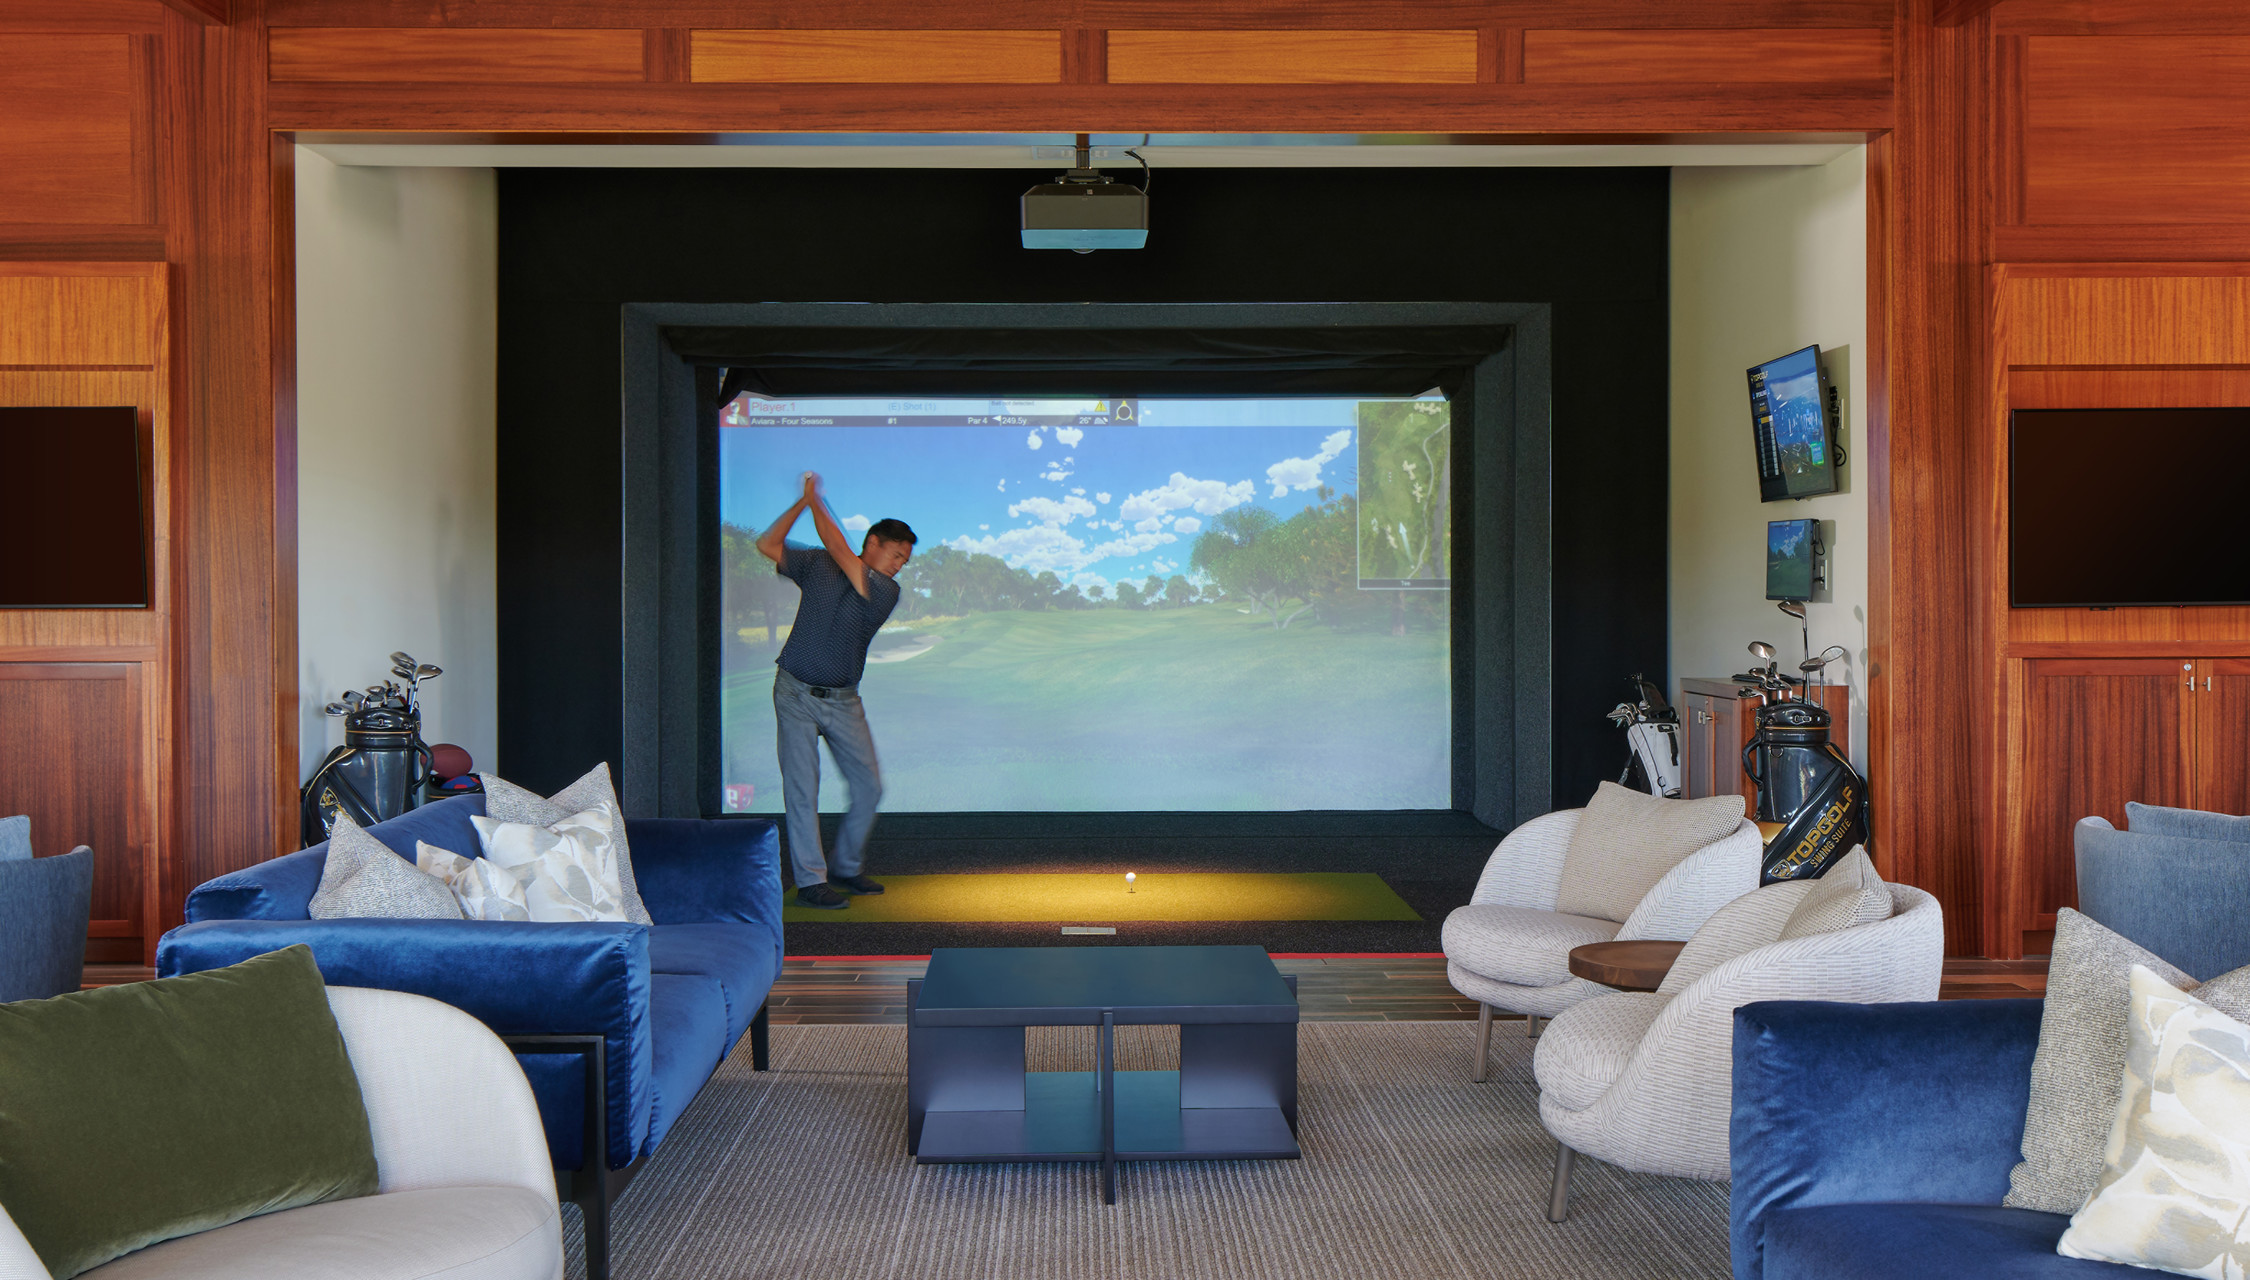 A room filled with comfortable seating has a screen with a golf course in the center, and a golf participant swinging.